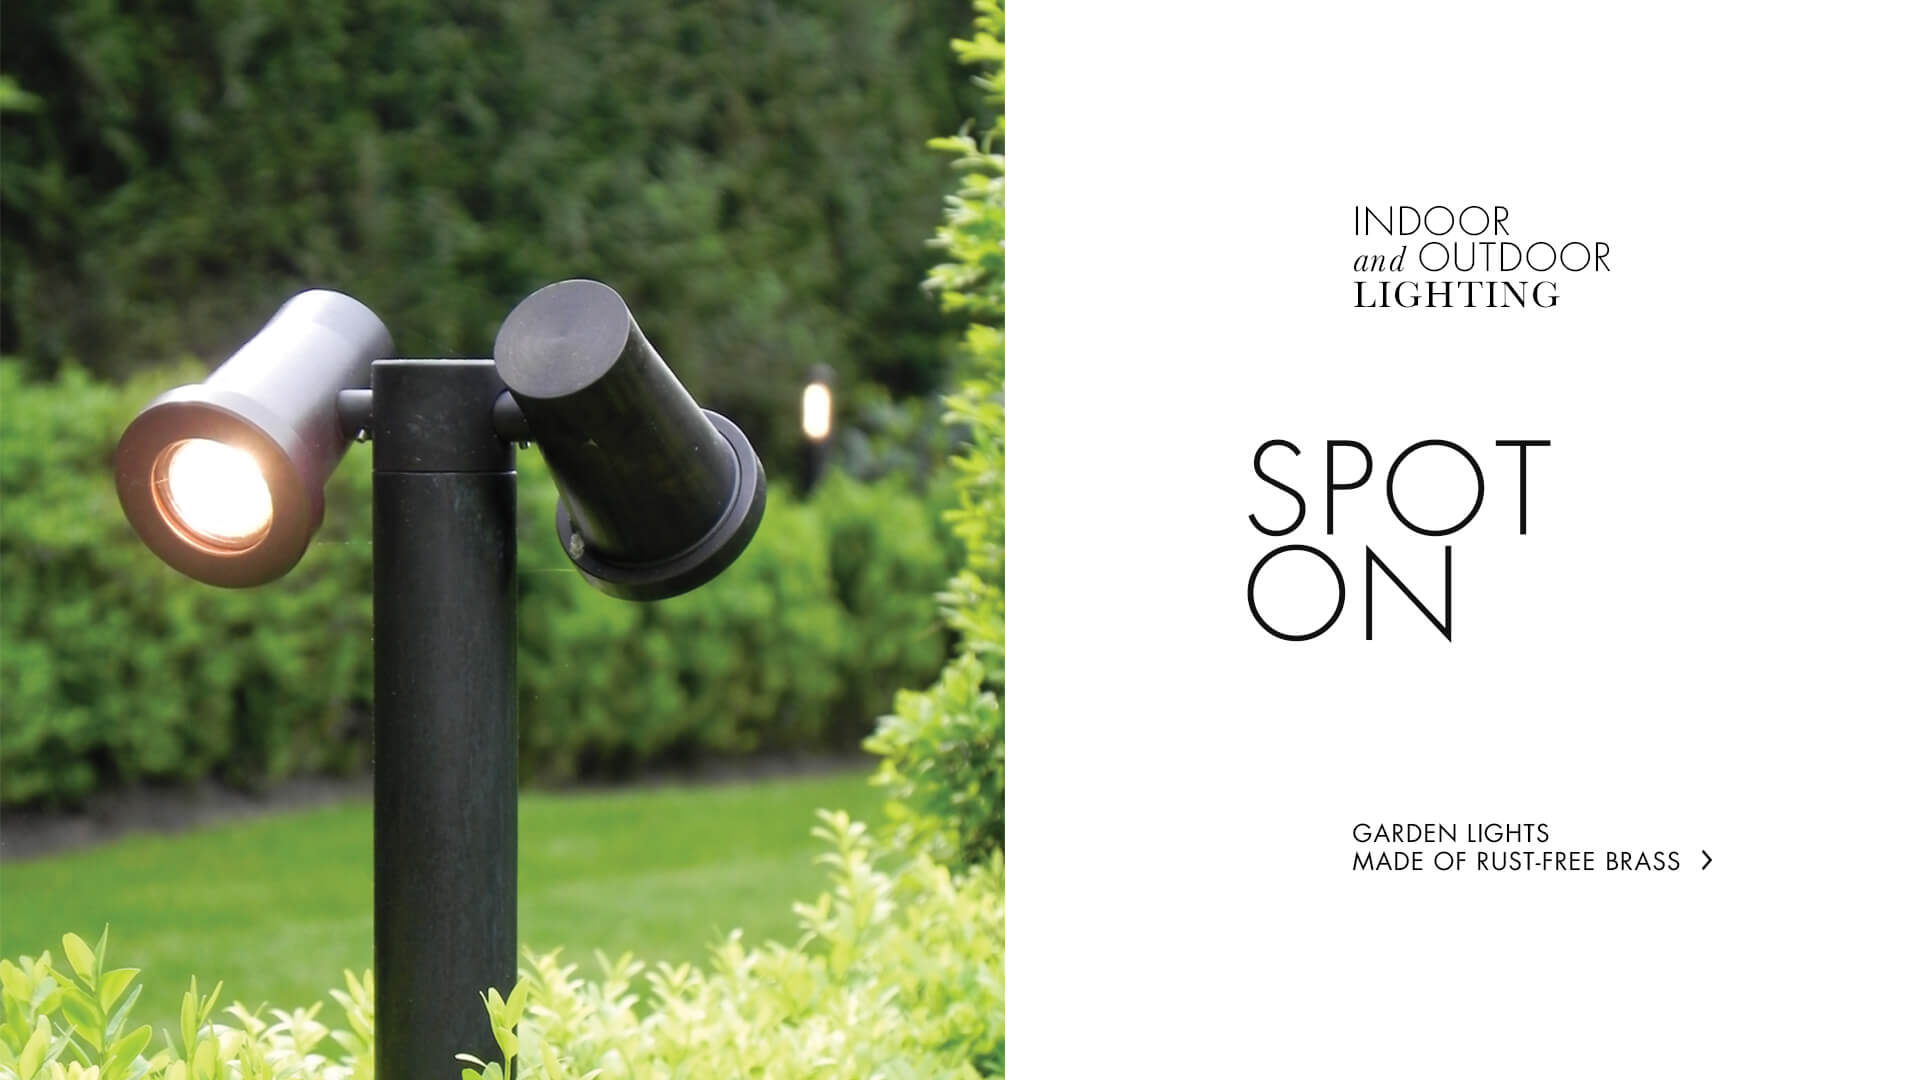 Indoor and Outdoor Lighting. Binnen- en buitenverlichting.